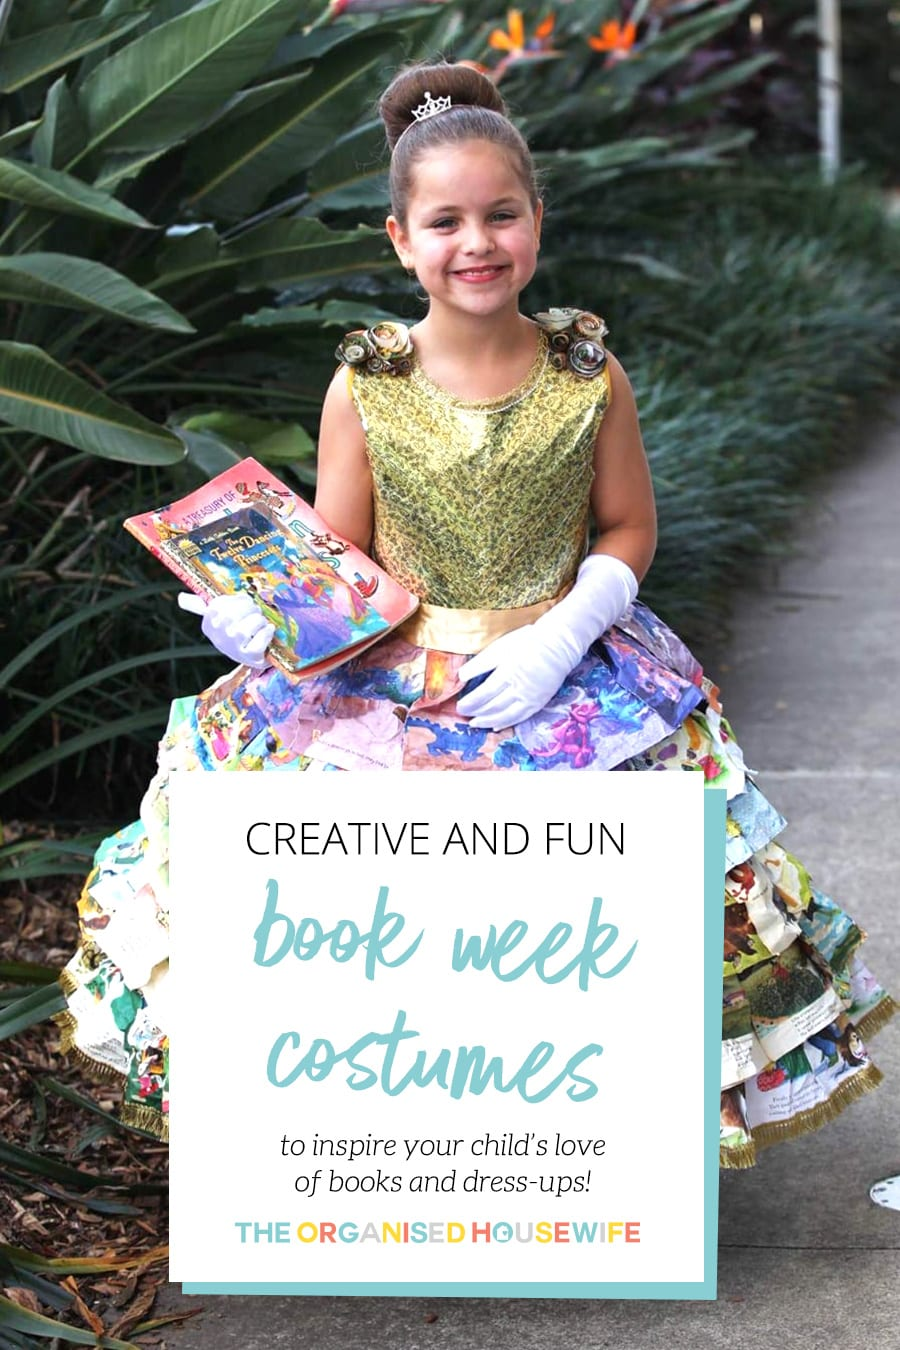 97610a628c1 Book Week 2019 Costume Ideas - Super Power - The Organised Housewife